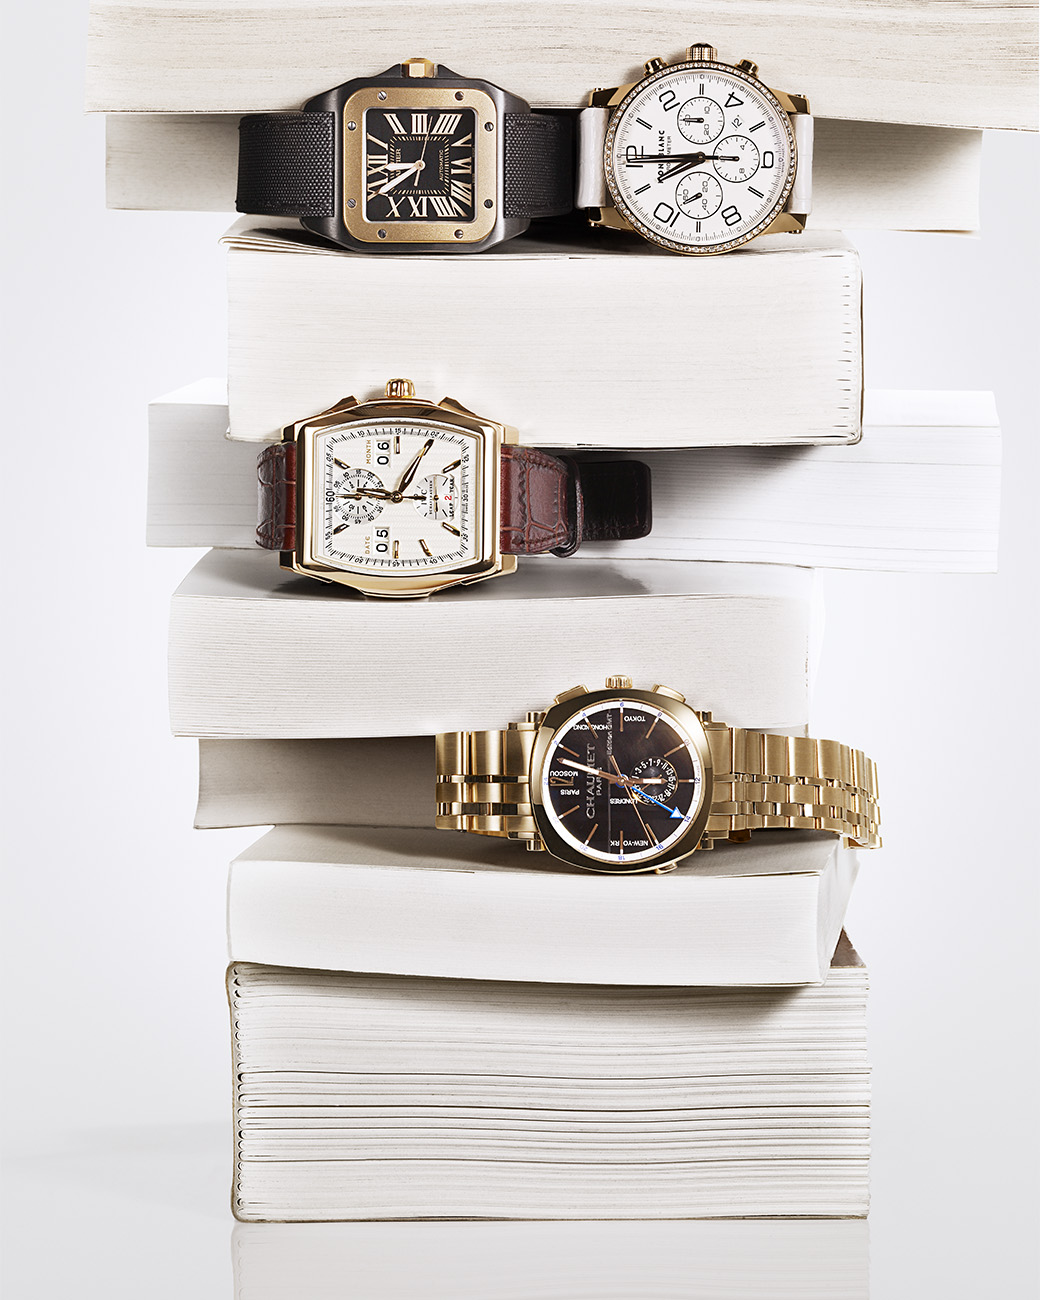 AD_nicolas_mingalon_valerie_paumelle_agent_still_life_photographer_nature_morte_jewelry_watches (3).jpg